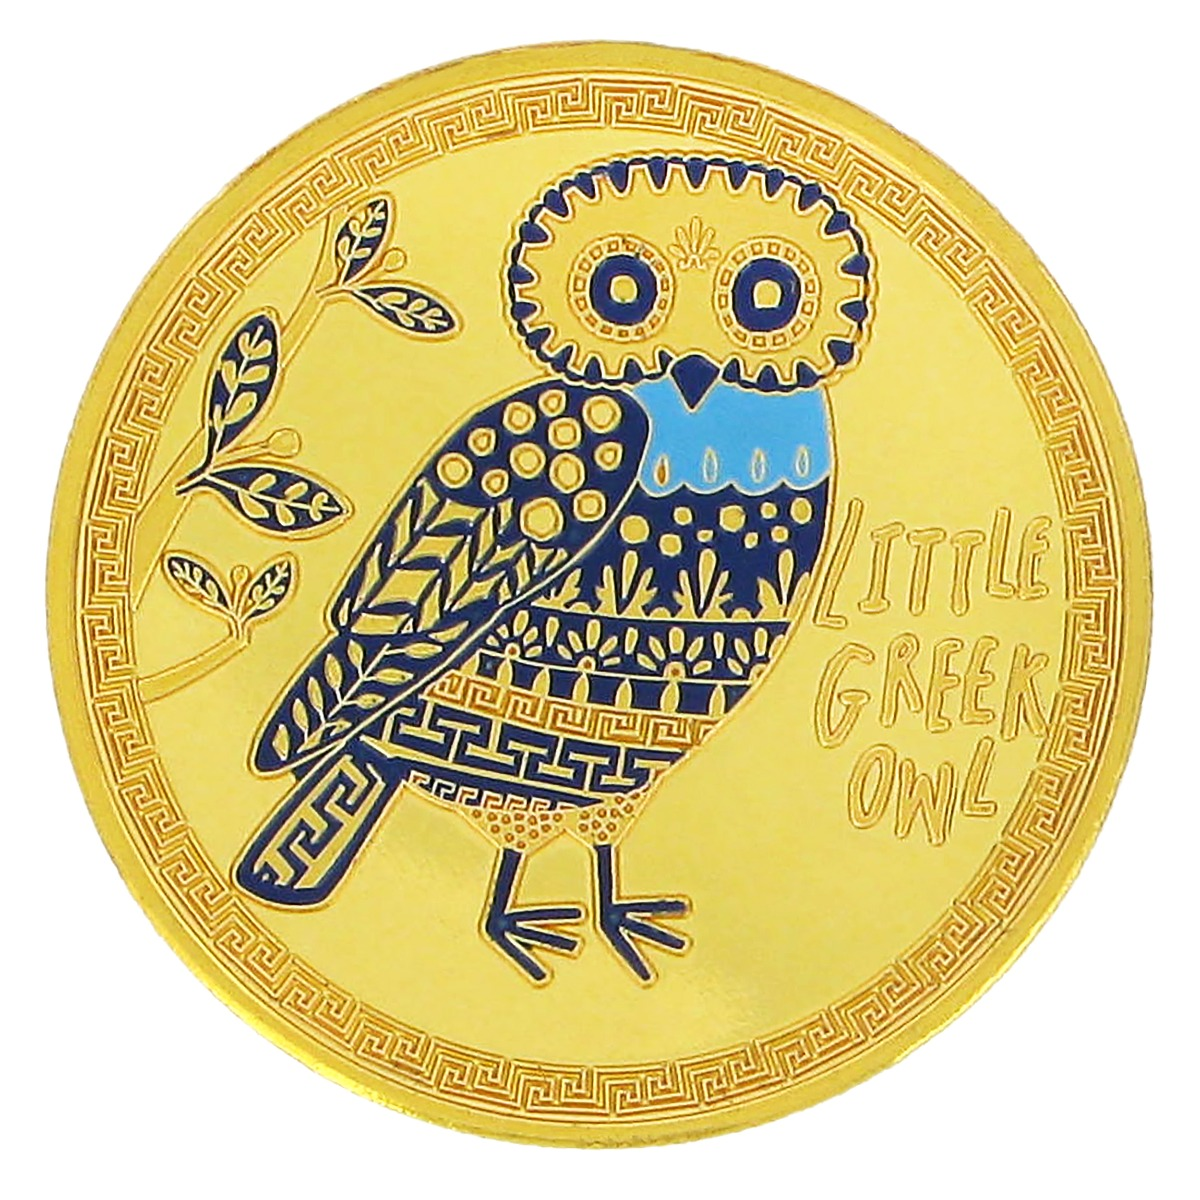 Little owl souvenir coin